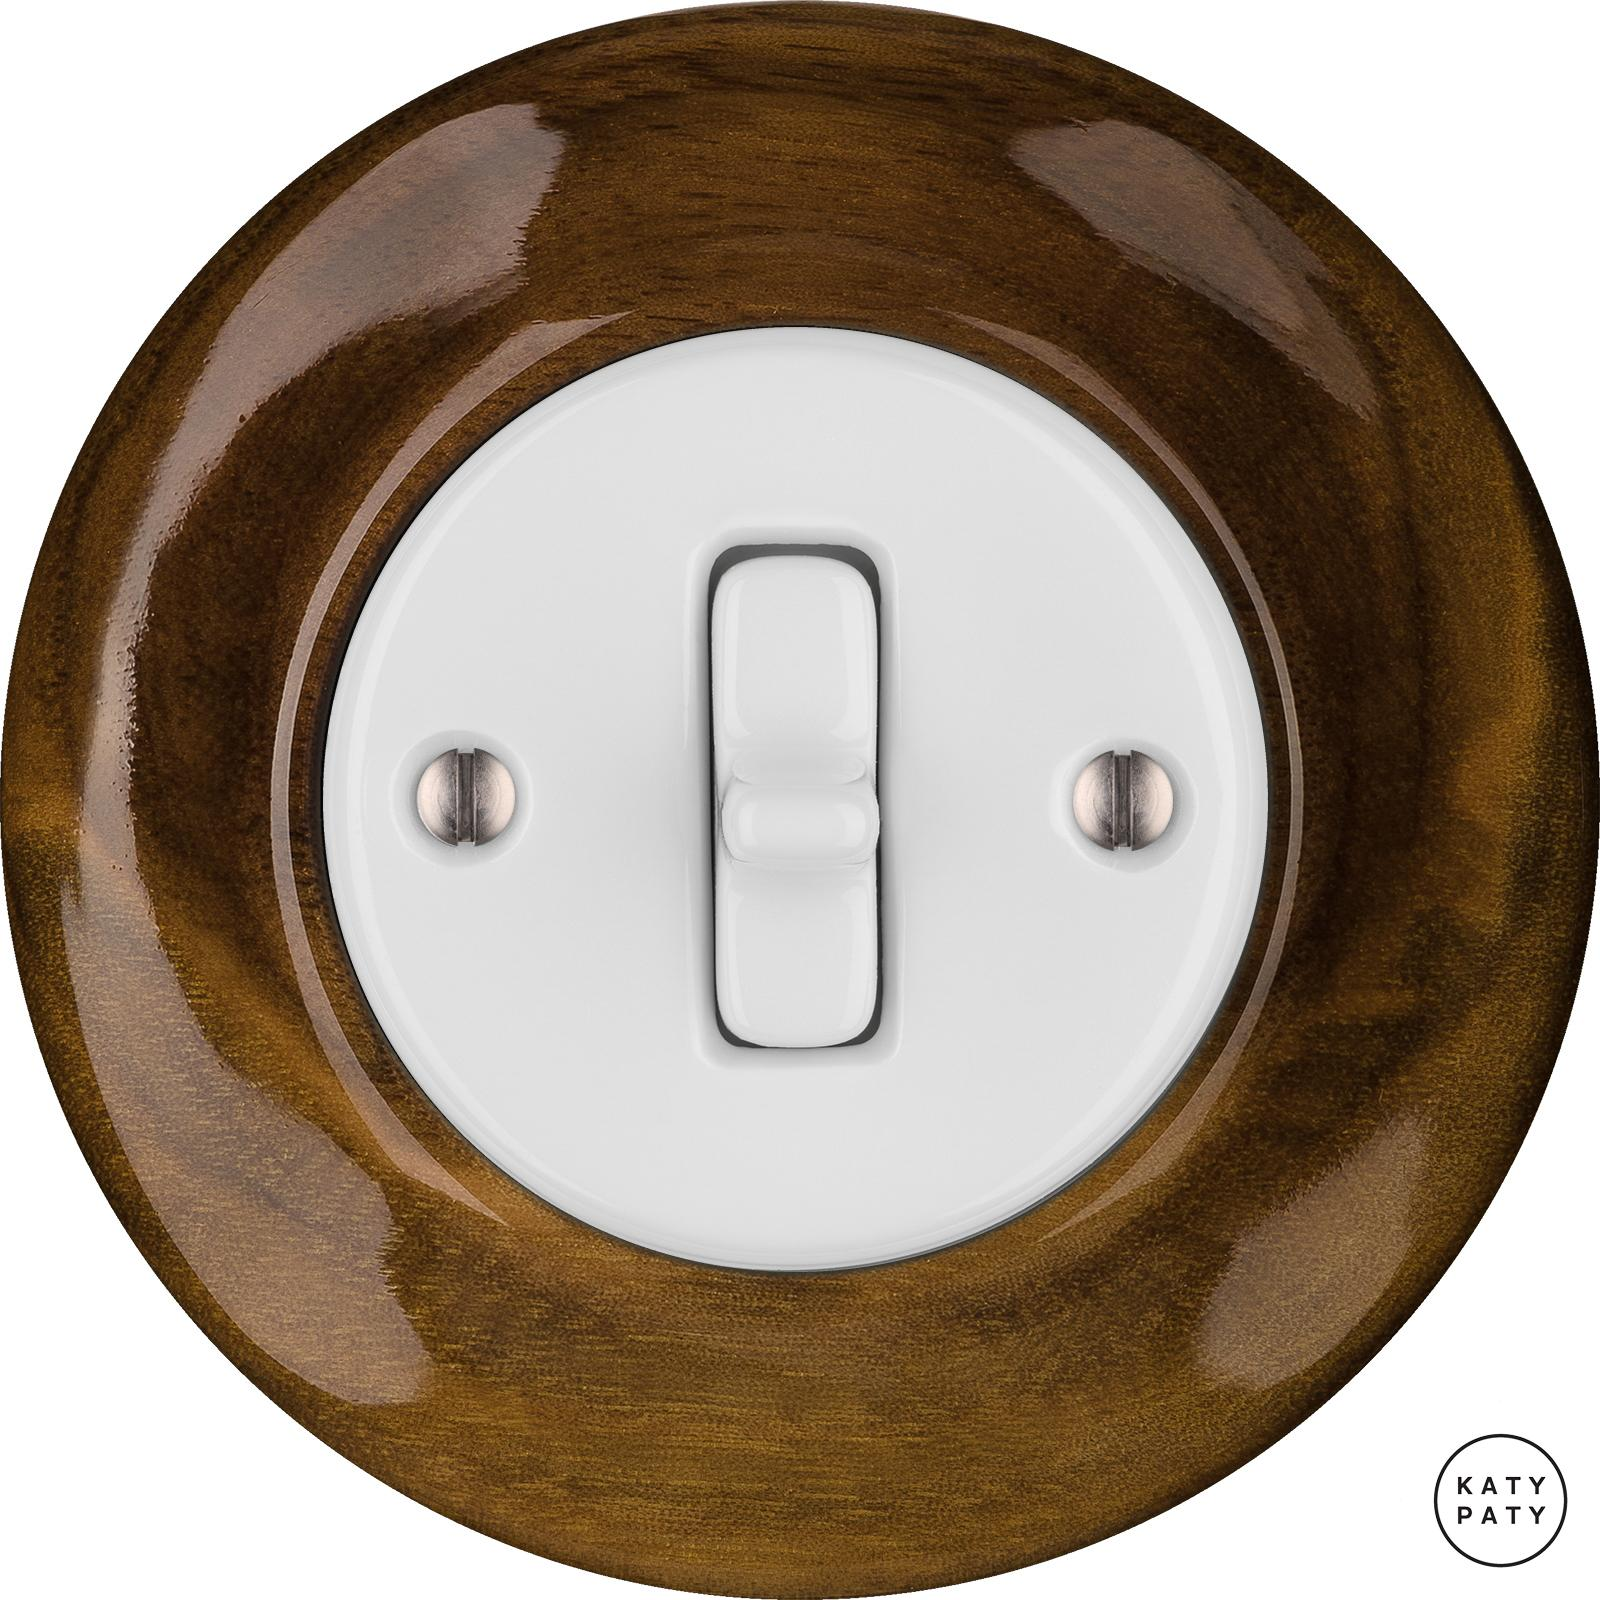 Porcelain Toggle switches - 1 gang ()  - NUC MAG | Katy Paty